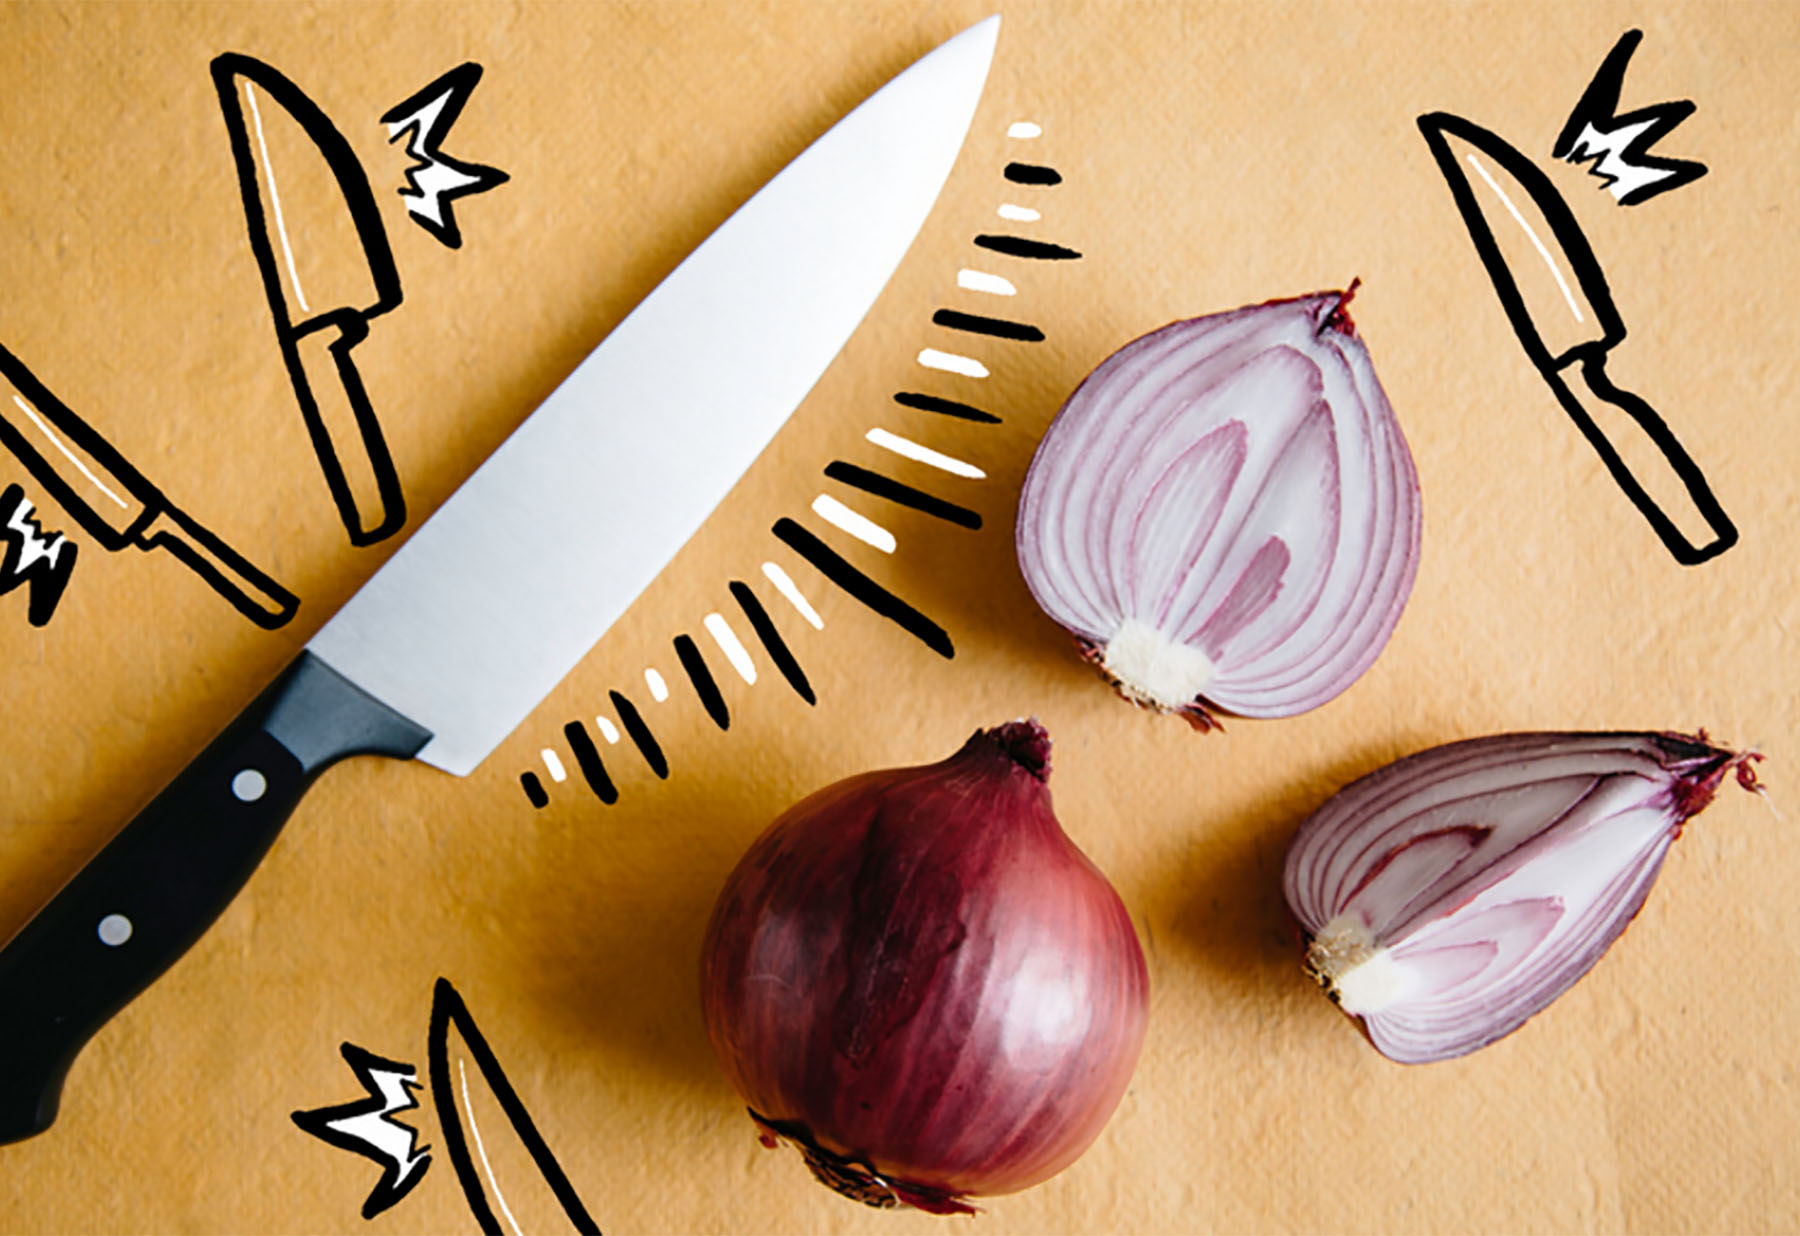 How To Cut An Onion Without Crying Greatist